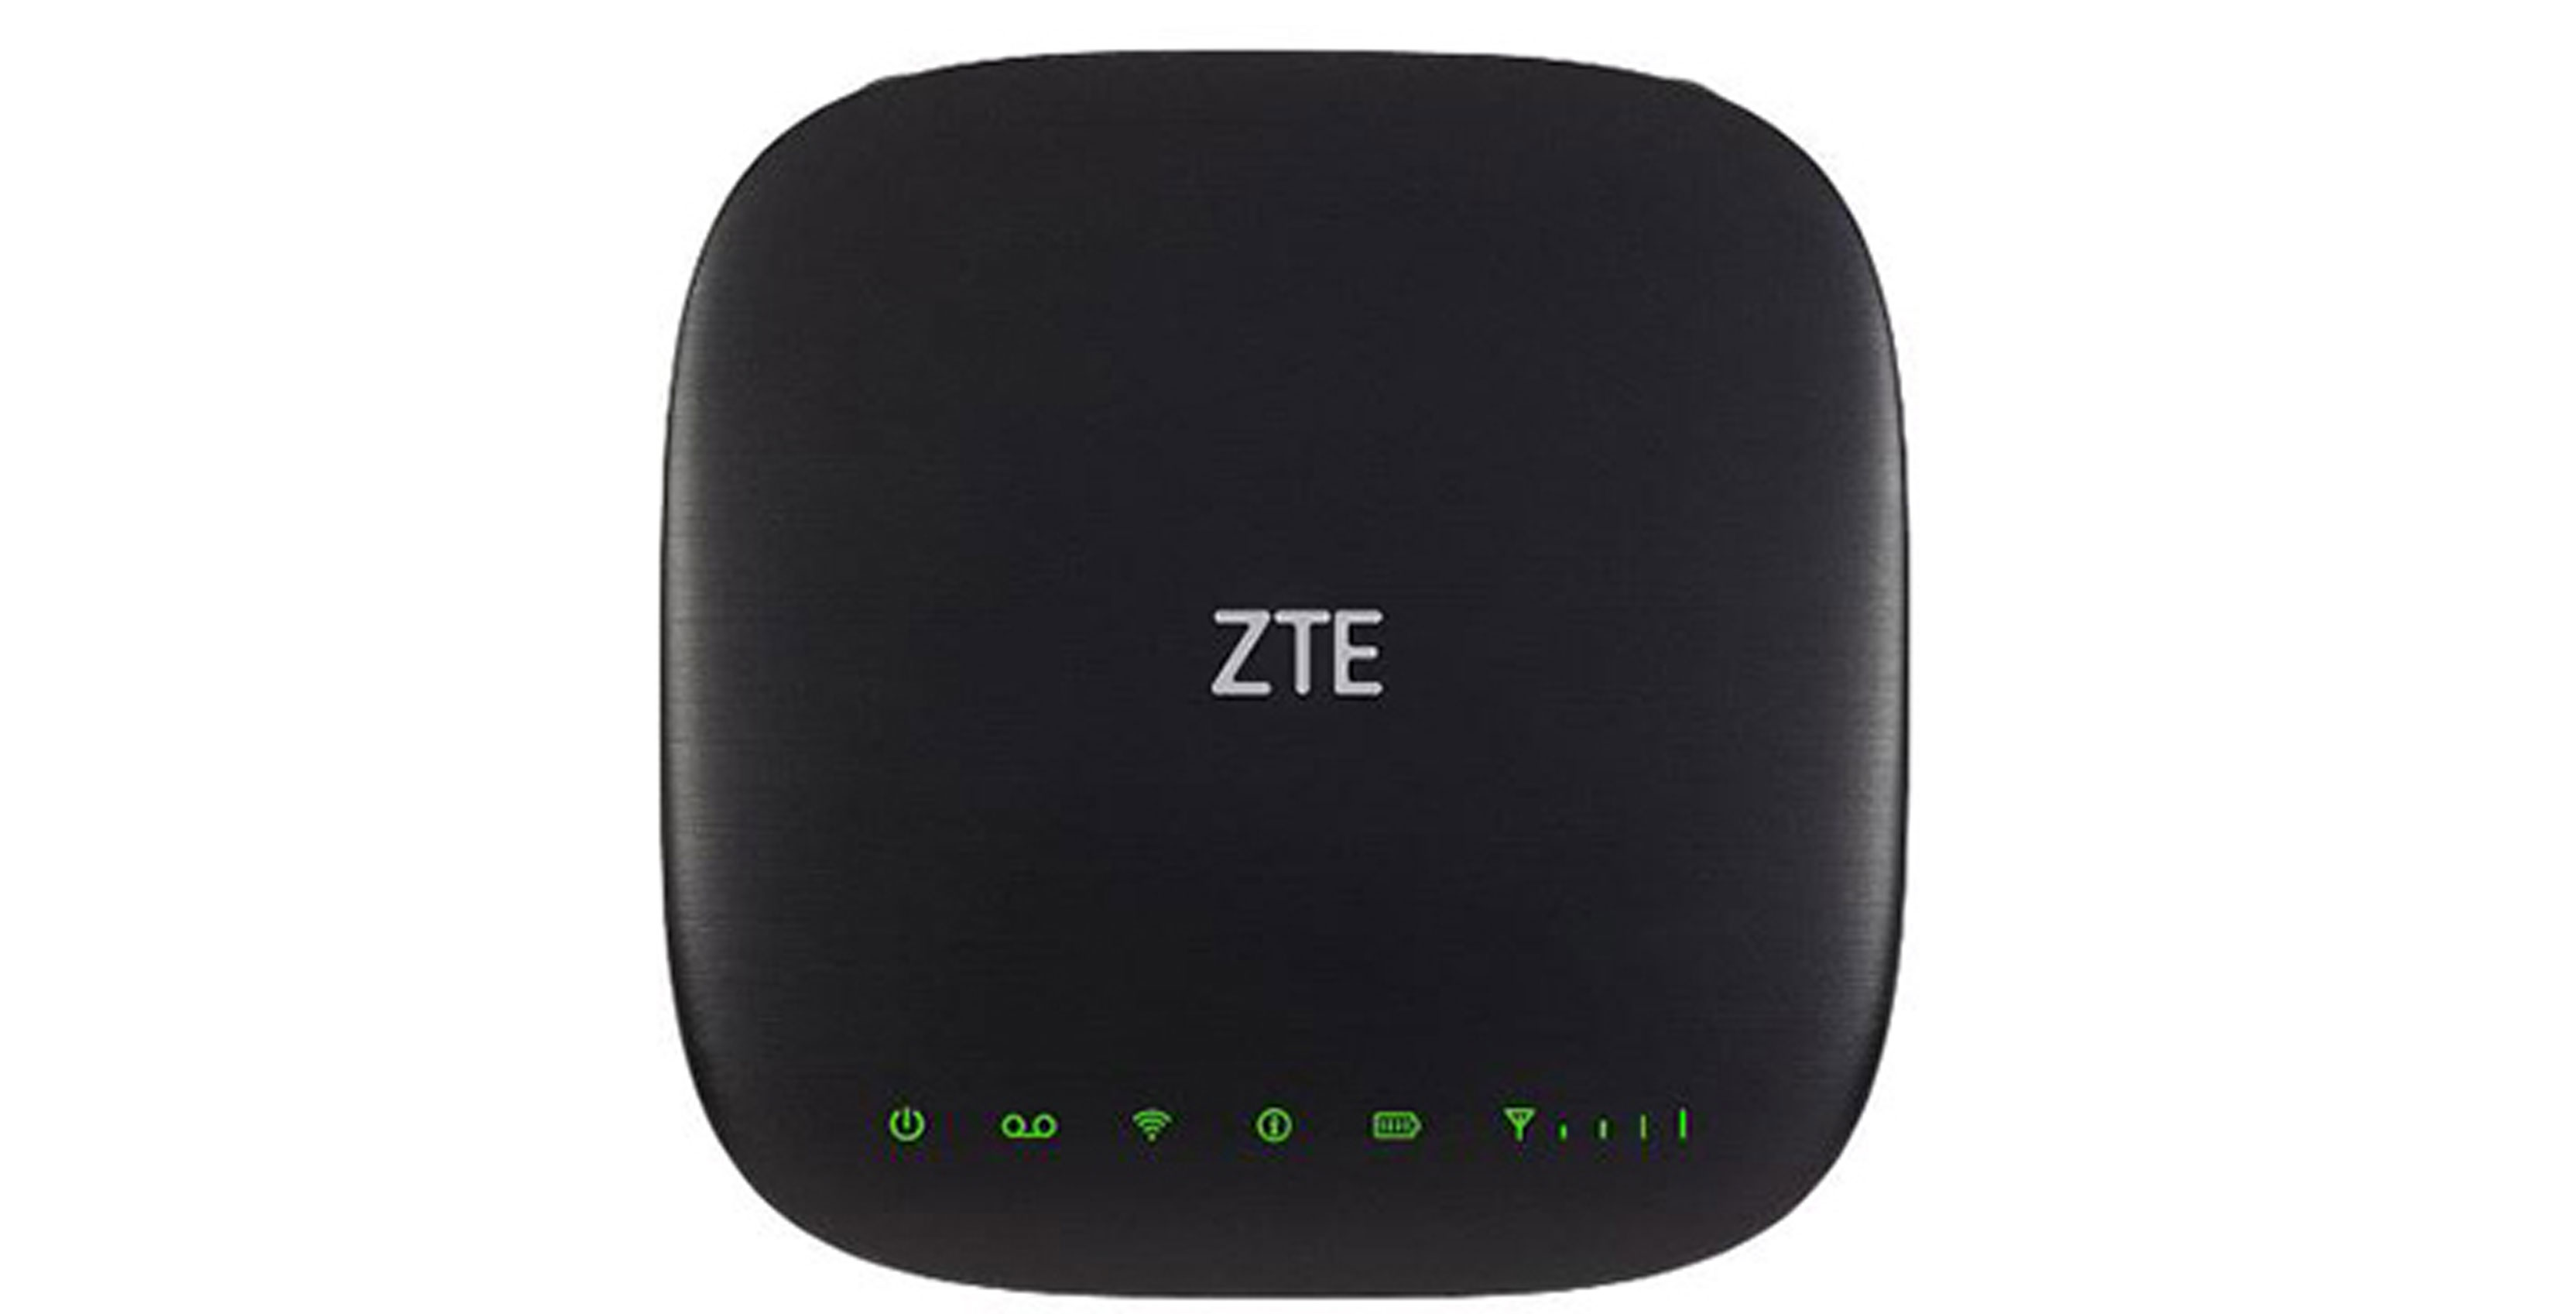 Rogers adds ZTE MF279T Rocket Hub to mobile internet device